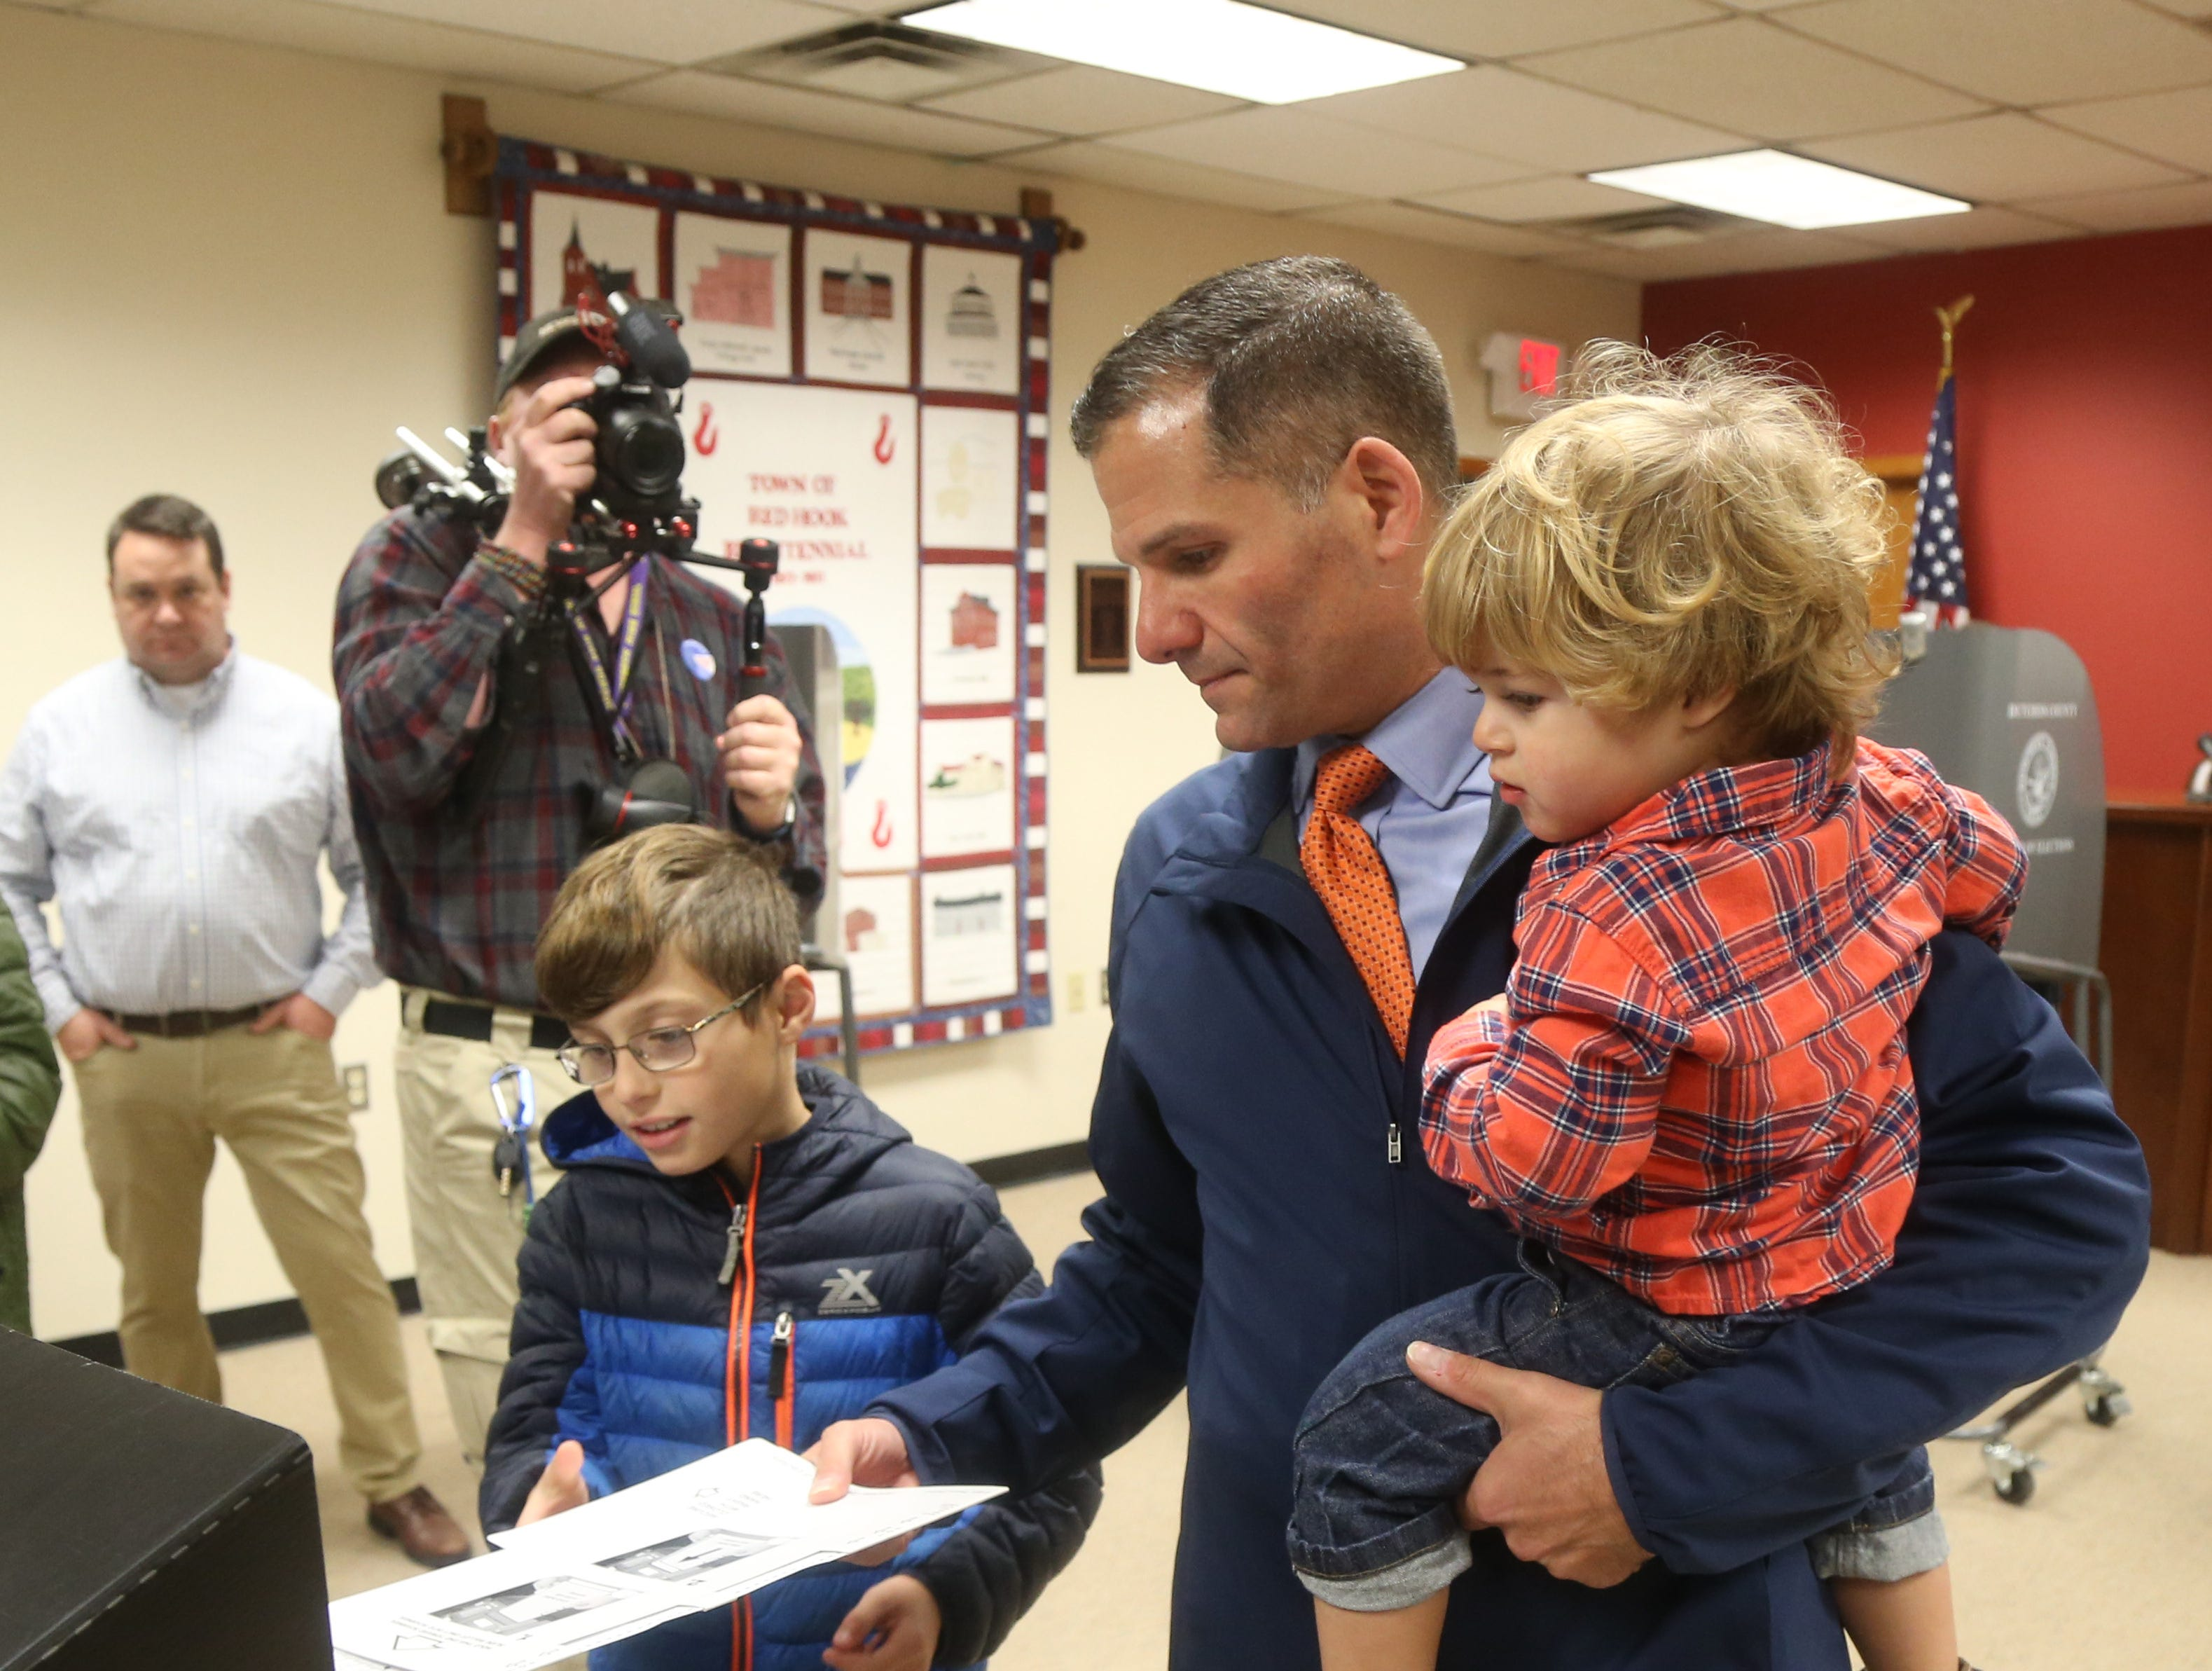 Republican gubernatorial candidate Marc Molinaro with his sons, from left, Jack and Elias, casts his ballot Tuesday at Red Hook Town Hall.